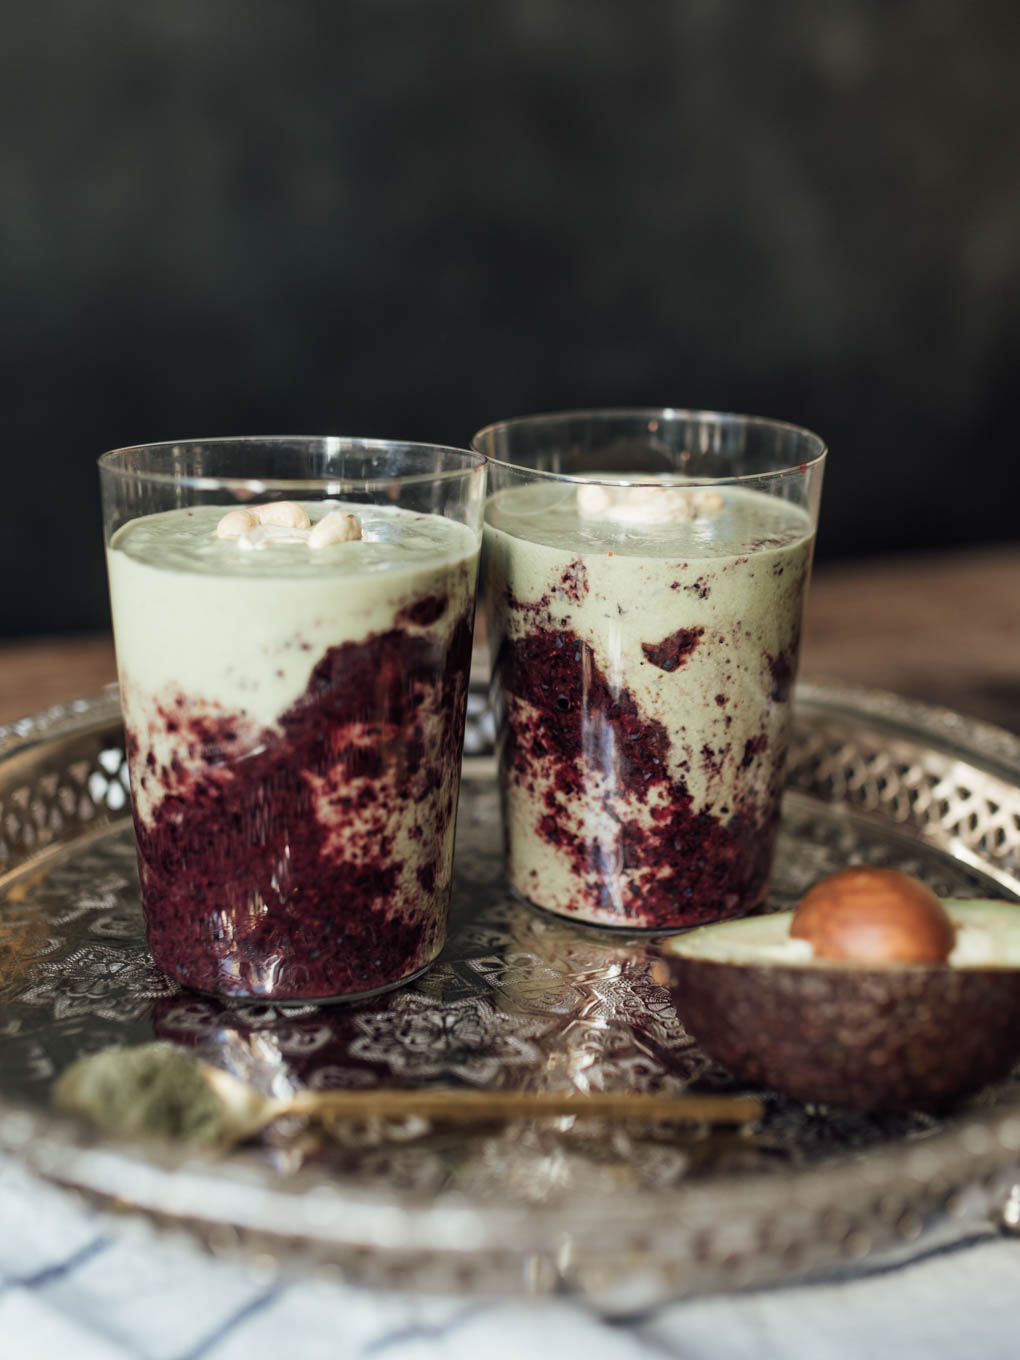 Bubbly Friday: Blueberry Matcha Power Smoothie | Love Daily Dose